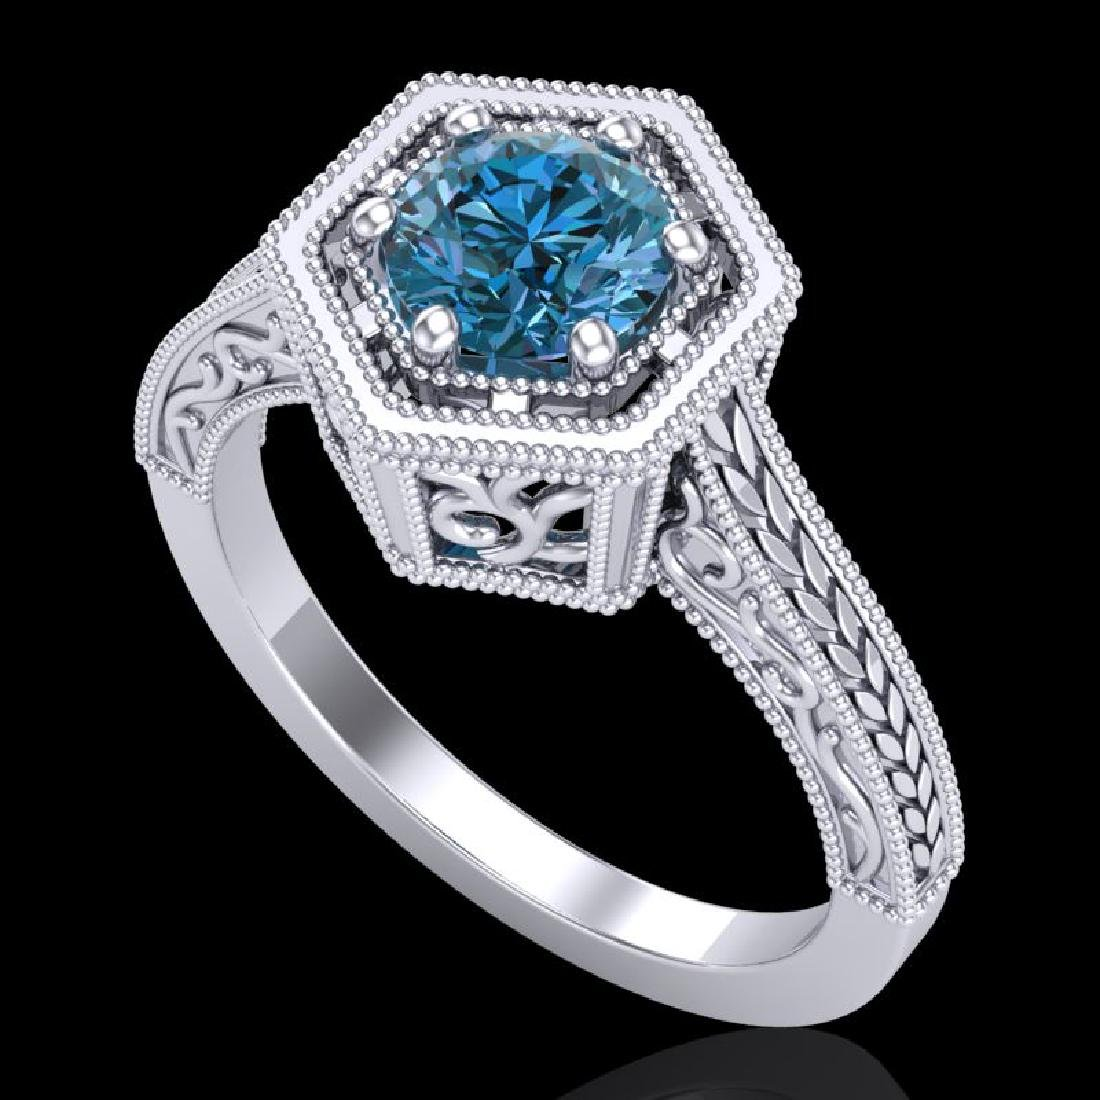 0.77 CTW Fancy Intense Blue Diamond Solitaire Art Deco